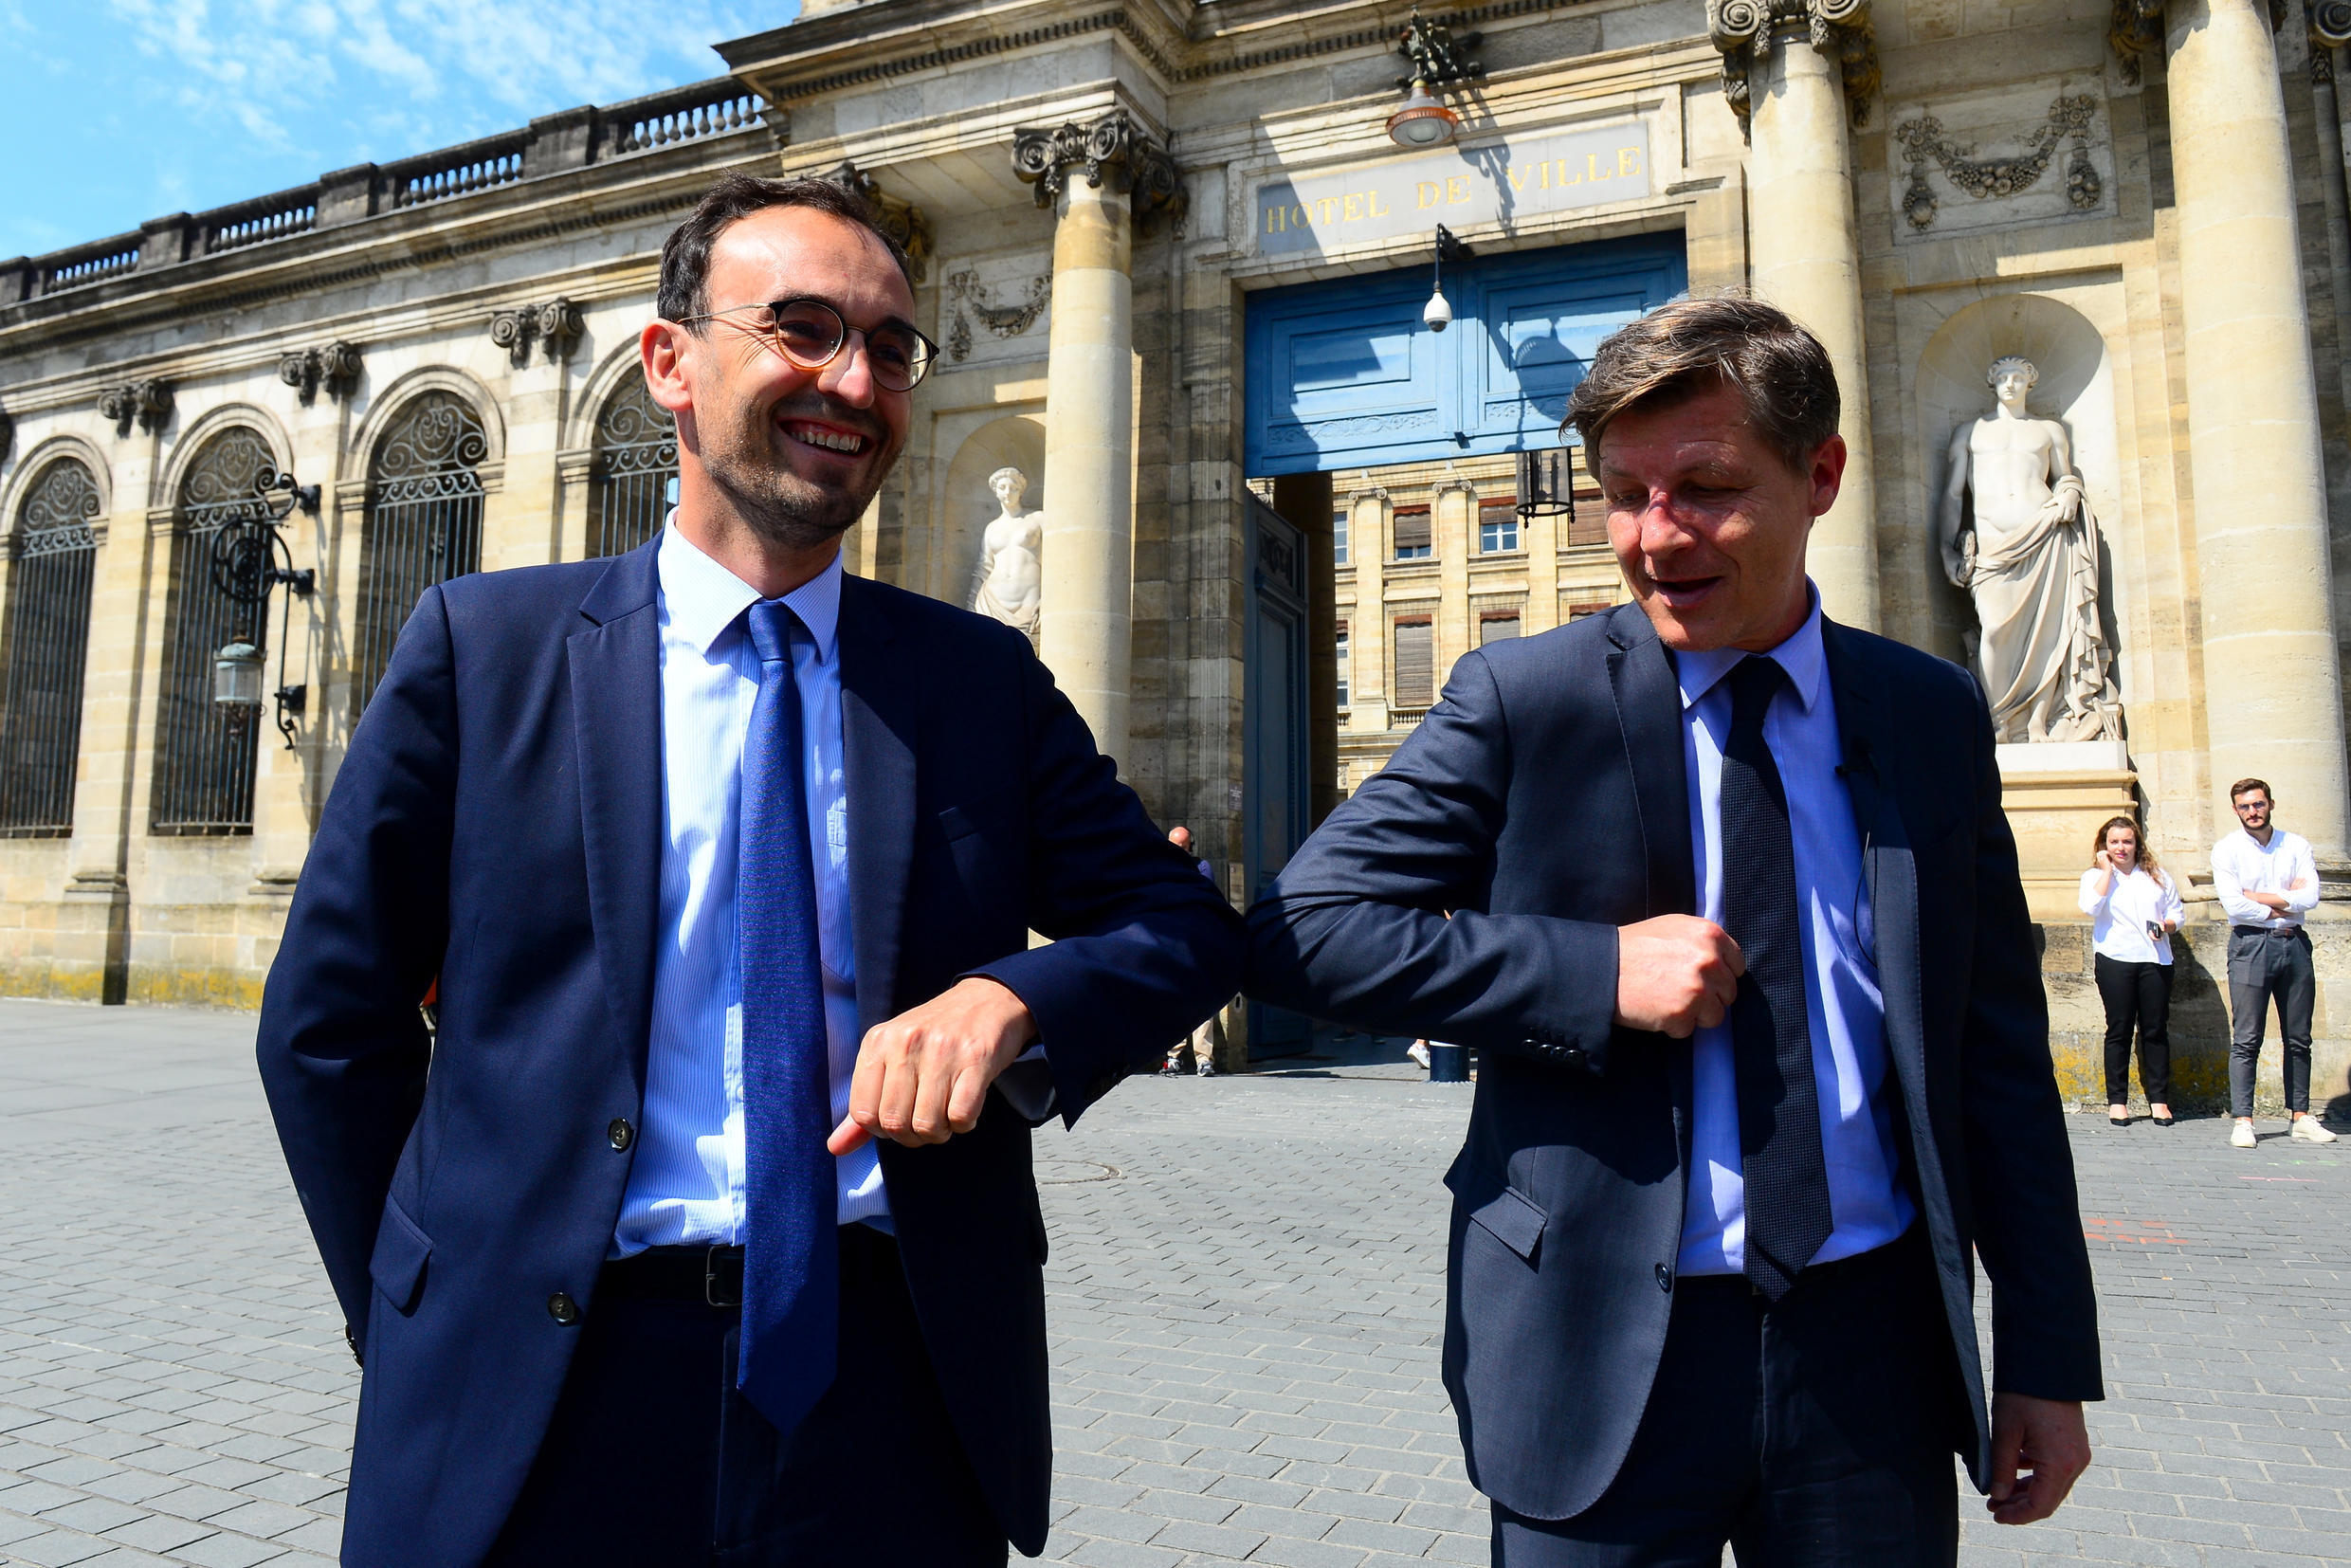 Les Republicains right wing party's incumbent mayor of Bordeaux Nicolas Florian and LREM's candidate to the mayoral elections Thomas Cazenave (L) touch eachothers elbows to avoid spreading the novel coronavirus Covid-19 as they announce an alliance ahead of the June 28 vote, in Bordeaux on June 3, 2020.